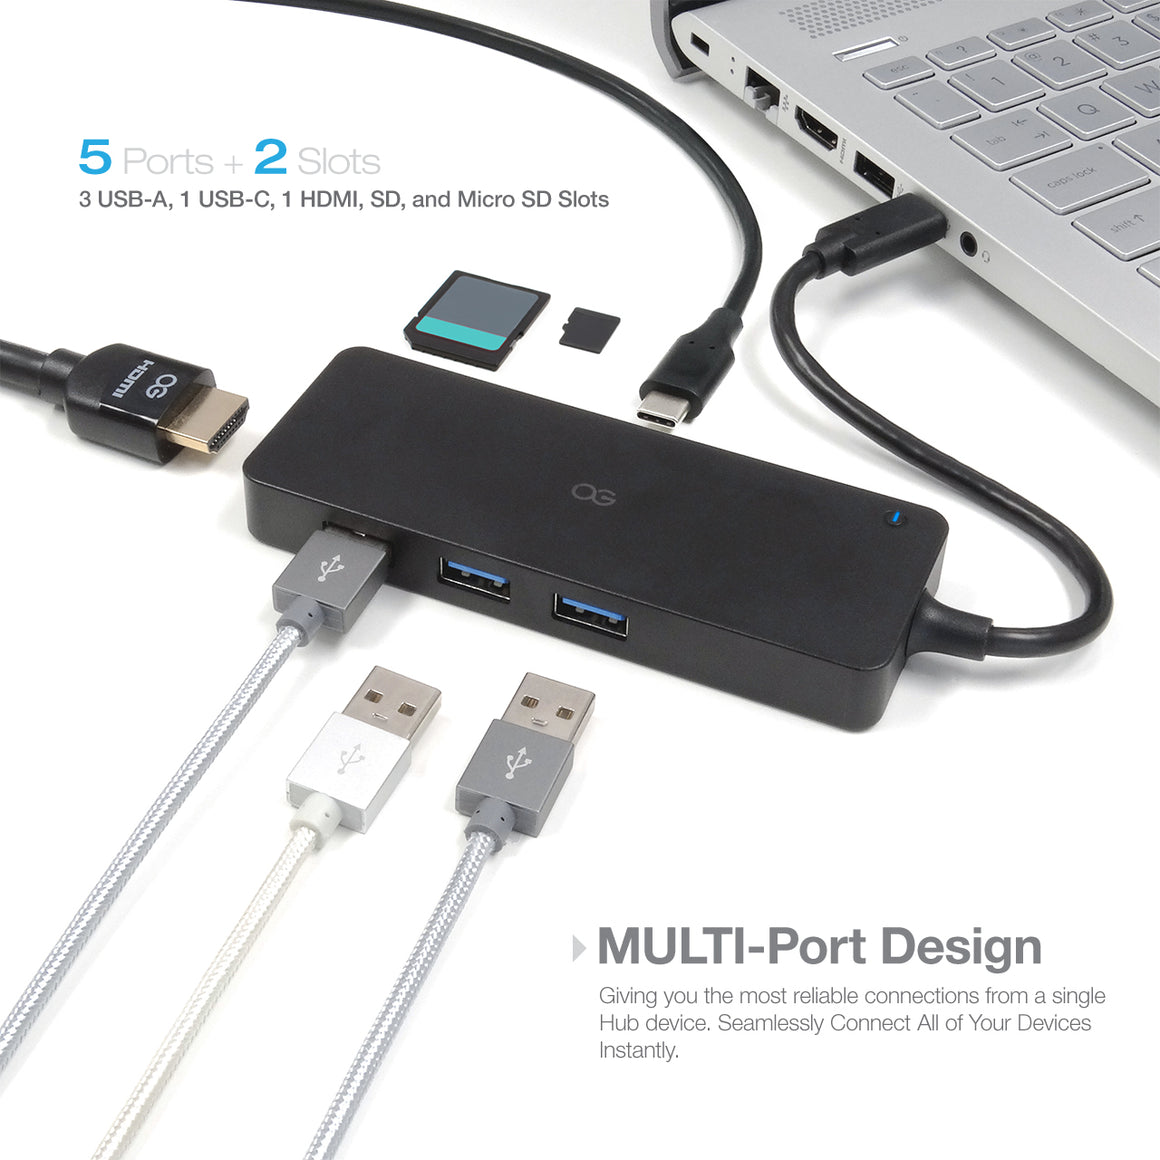 Omnigates Type-C USB Hub - 3 USB 3.0 Ports, 1 HDMI port, 1 Type-C Port with Power Delivery, & SD/Micro SD Card Reader - omnigates.com